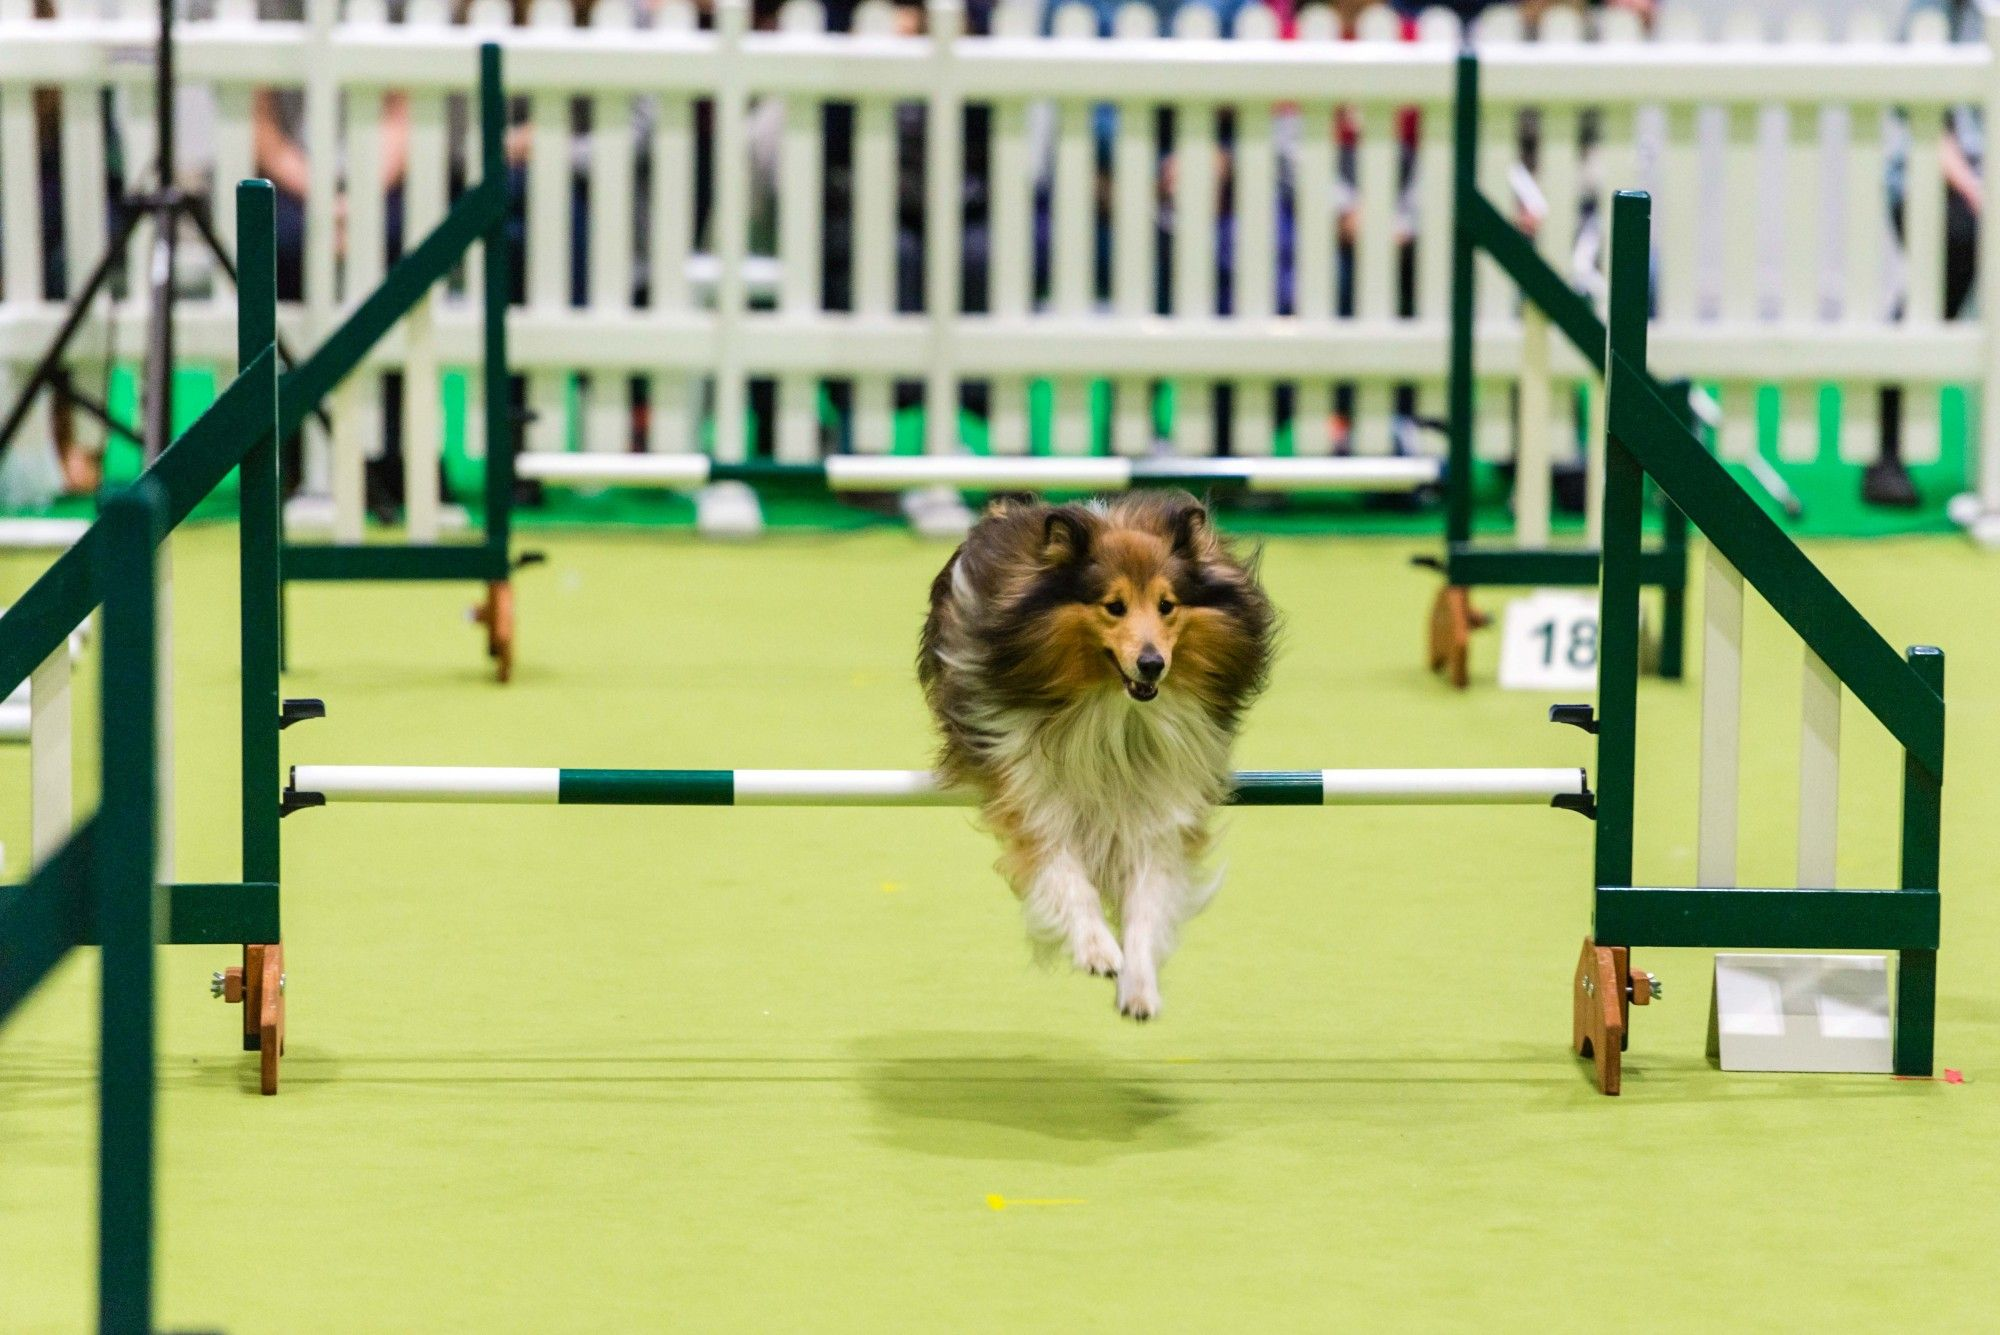 Success for National Pet Show London 2017 #NationalPetShow #dogs #dogshows #dogshowing